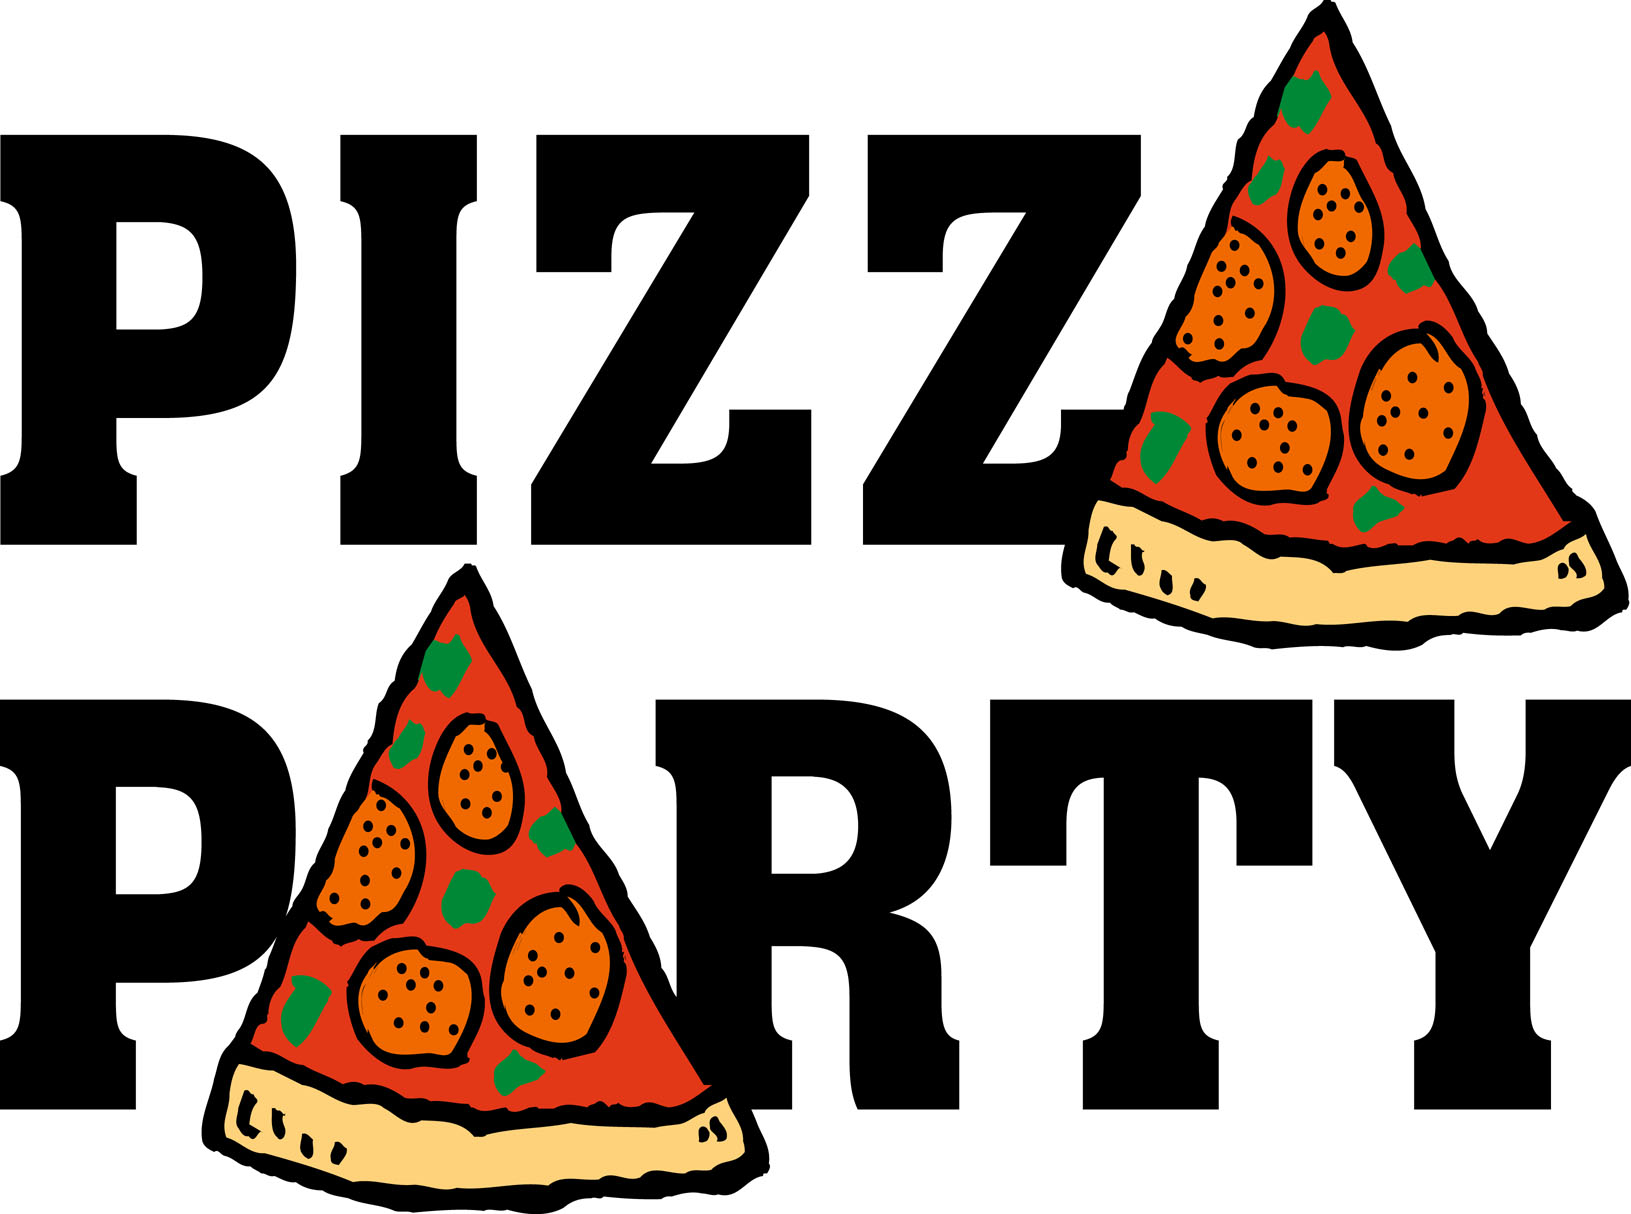 Party clipart office lunch Clipart Images Clip Art Party